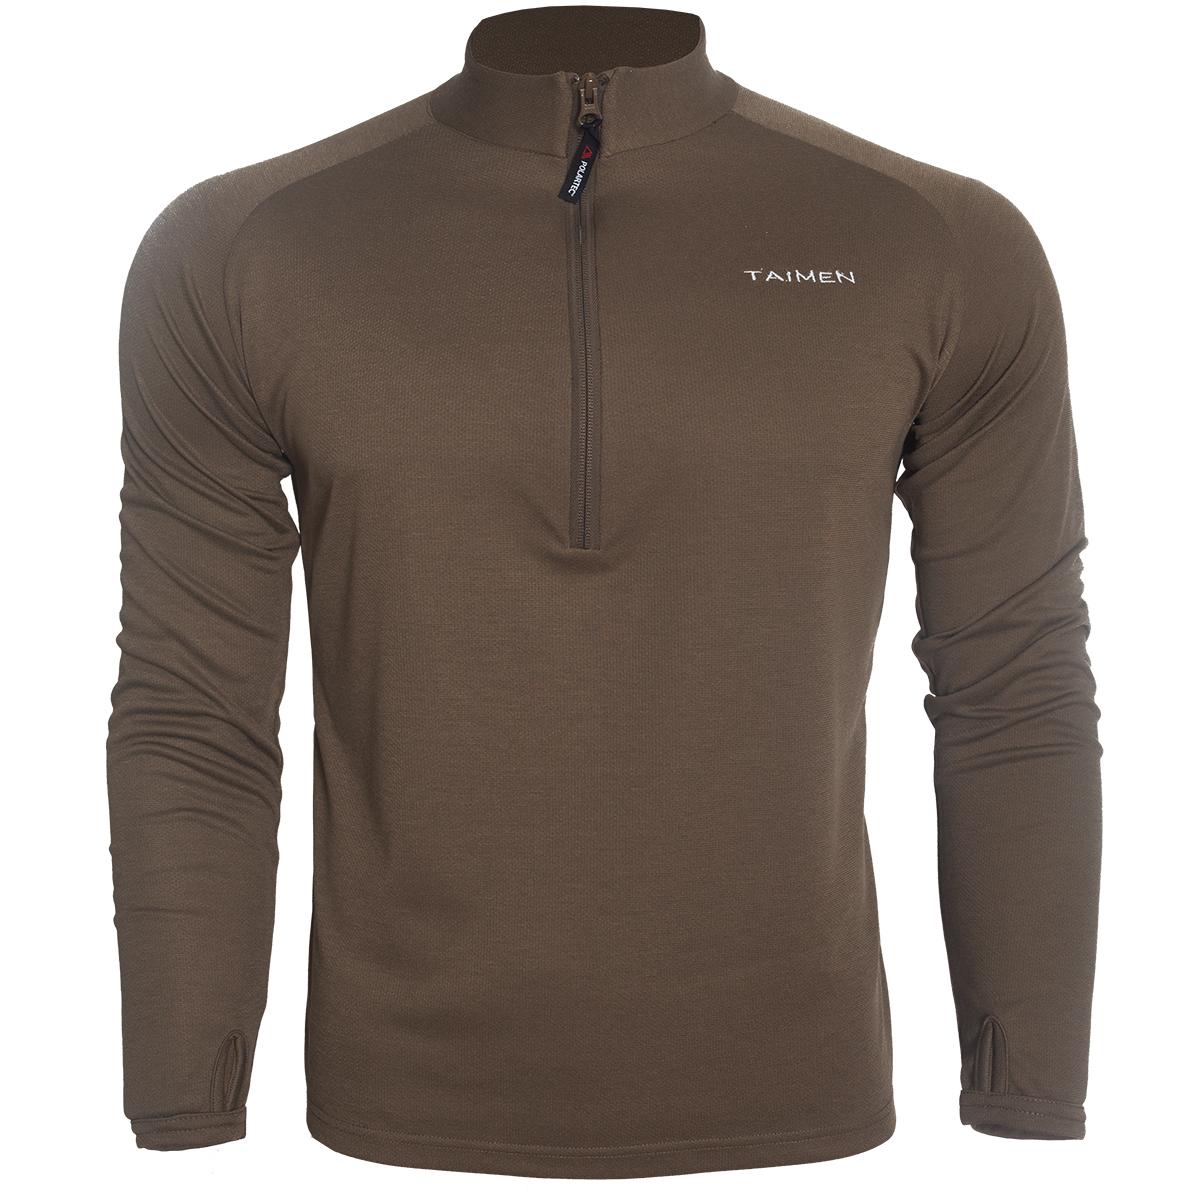 Taimen Polartec Power Dry Heavy Weight Zip Top - Canteen